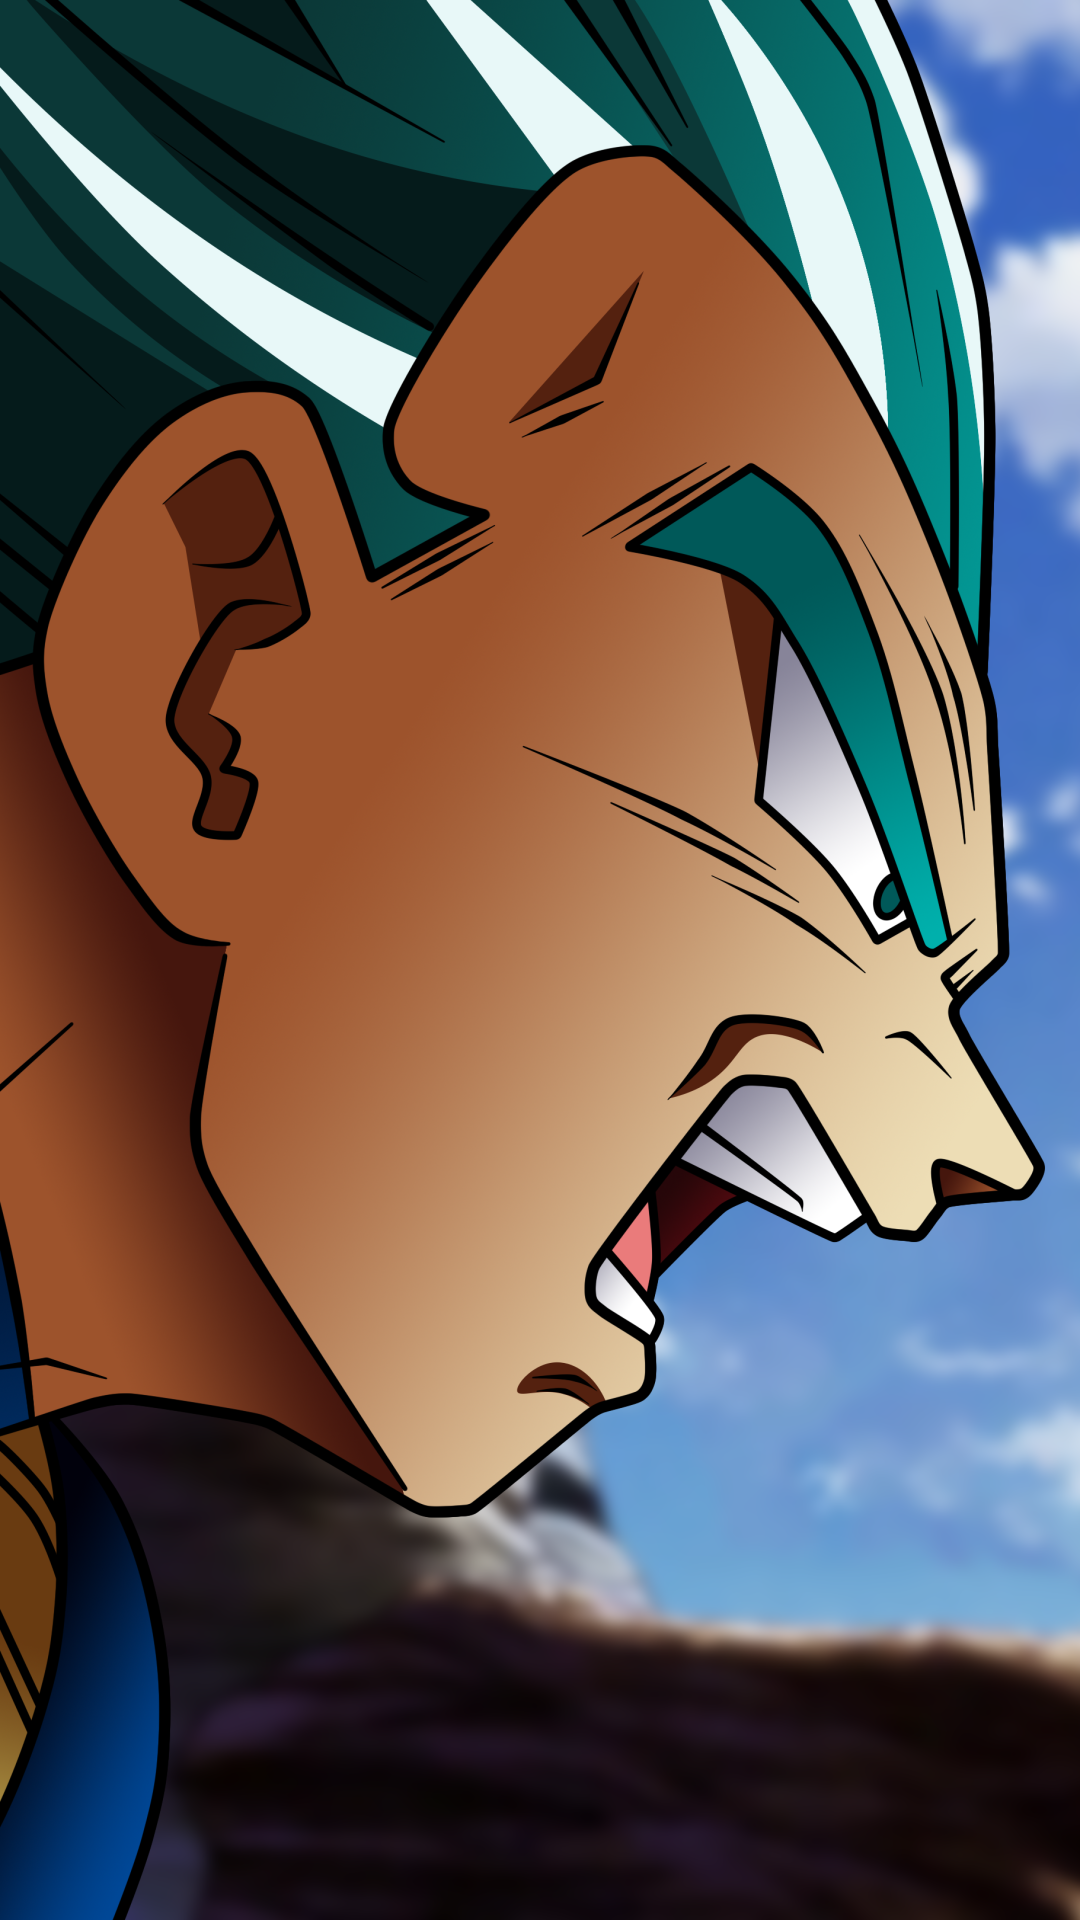 Download this wallpaper animedragon ball super 1080x1920 for all download this wallpaper animedragon ball super 1080x1920 for all your phones and voltagebd Images